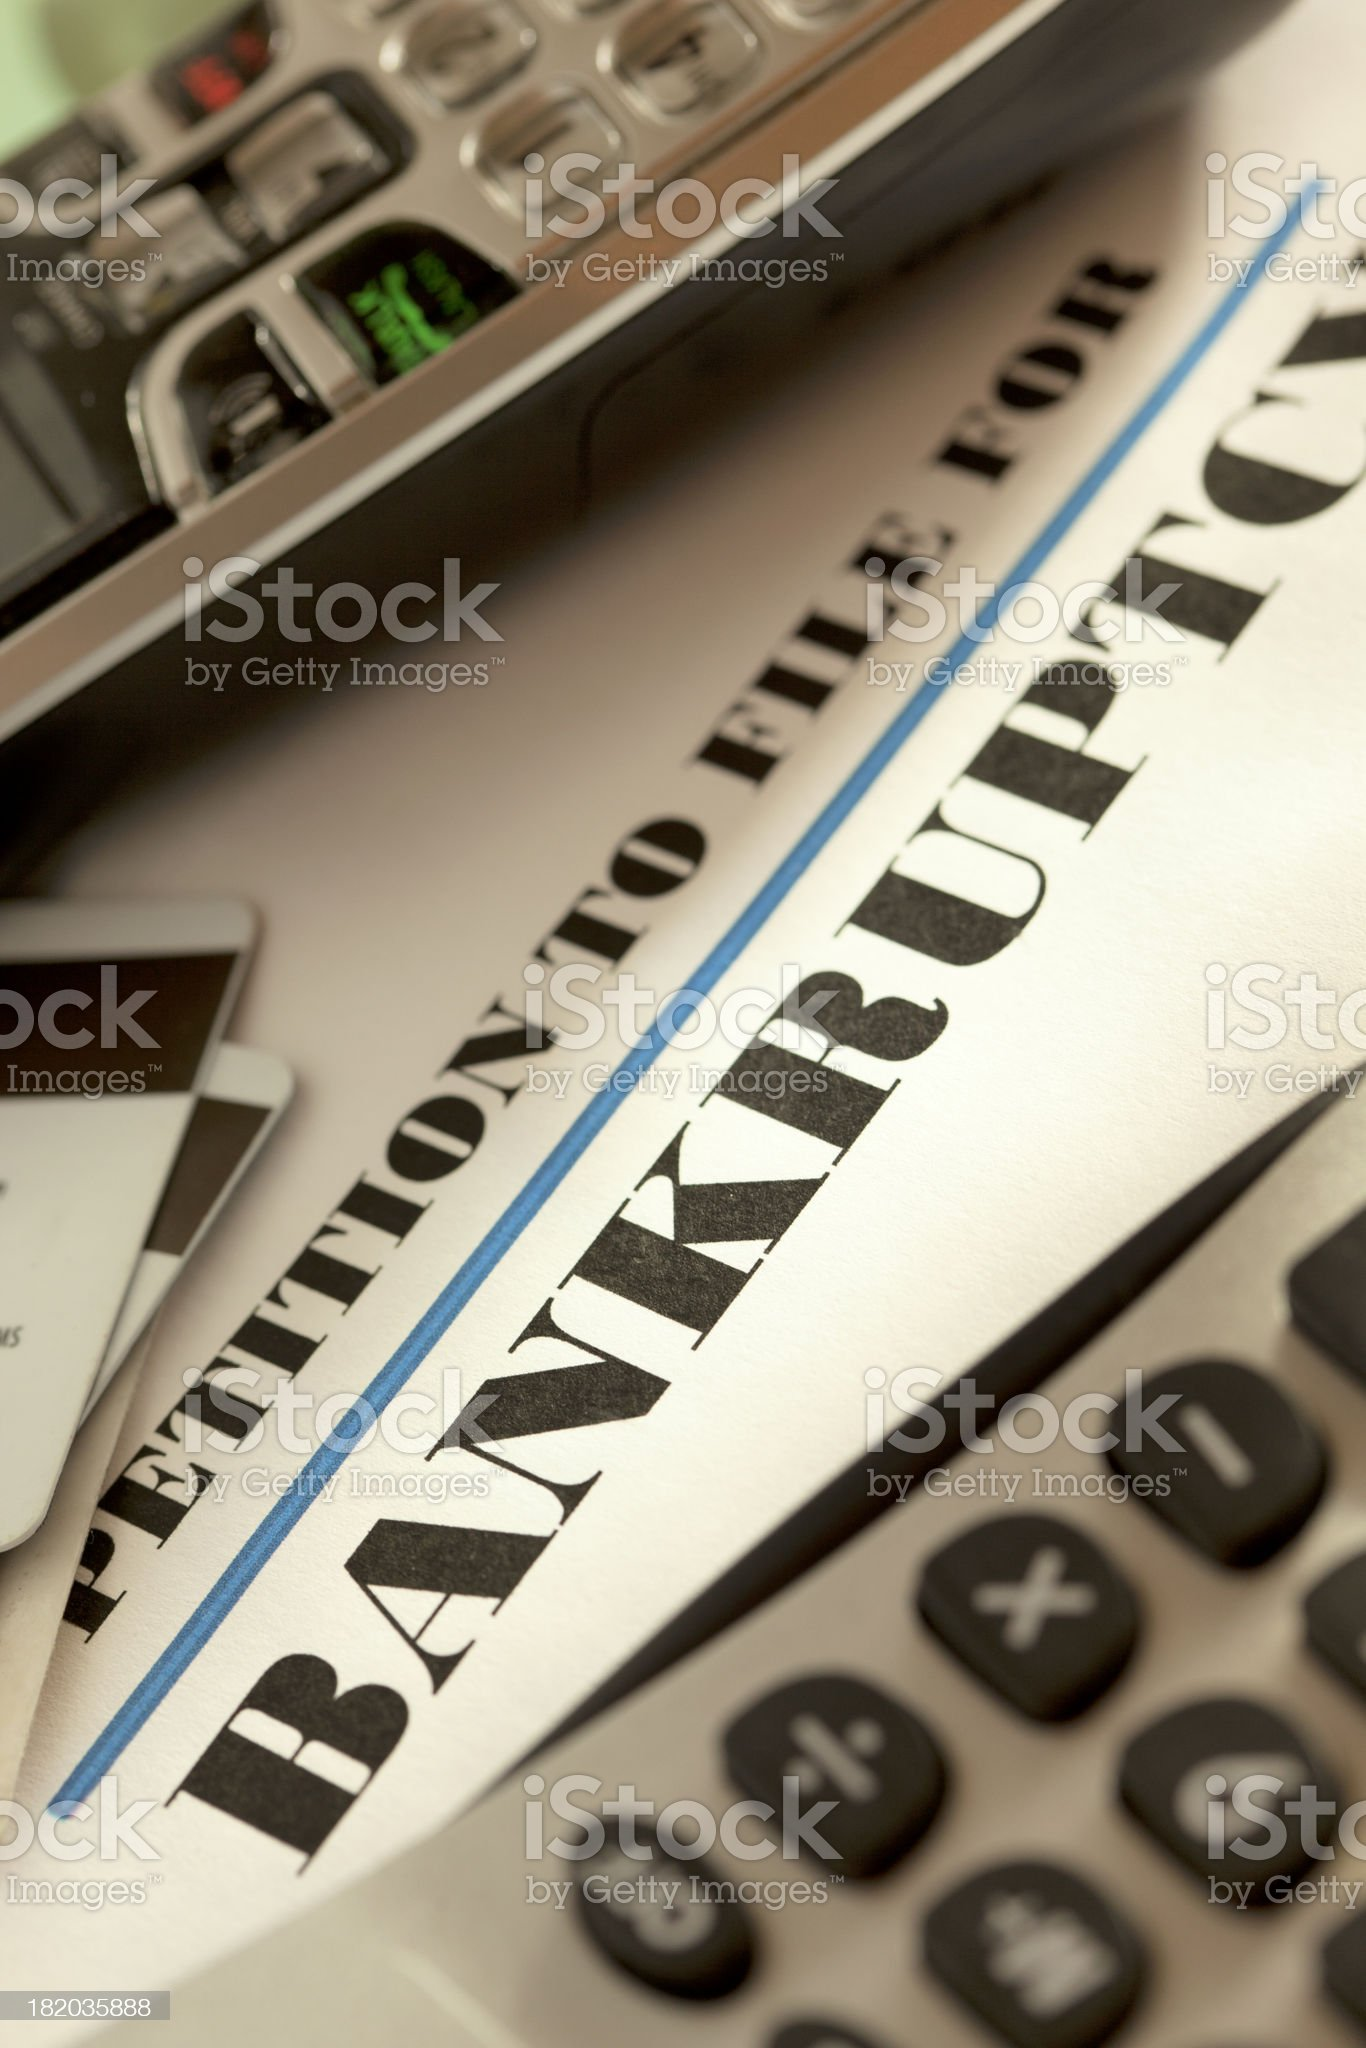 Bankruptcy royalty-free stock photo